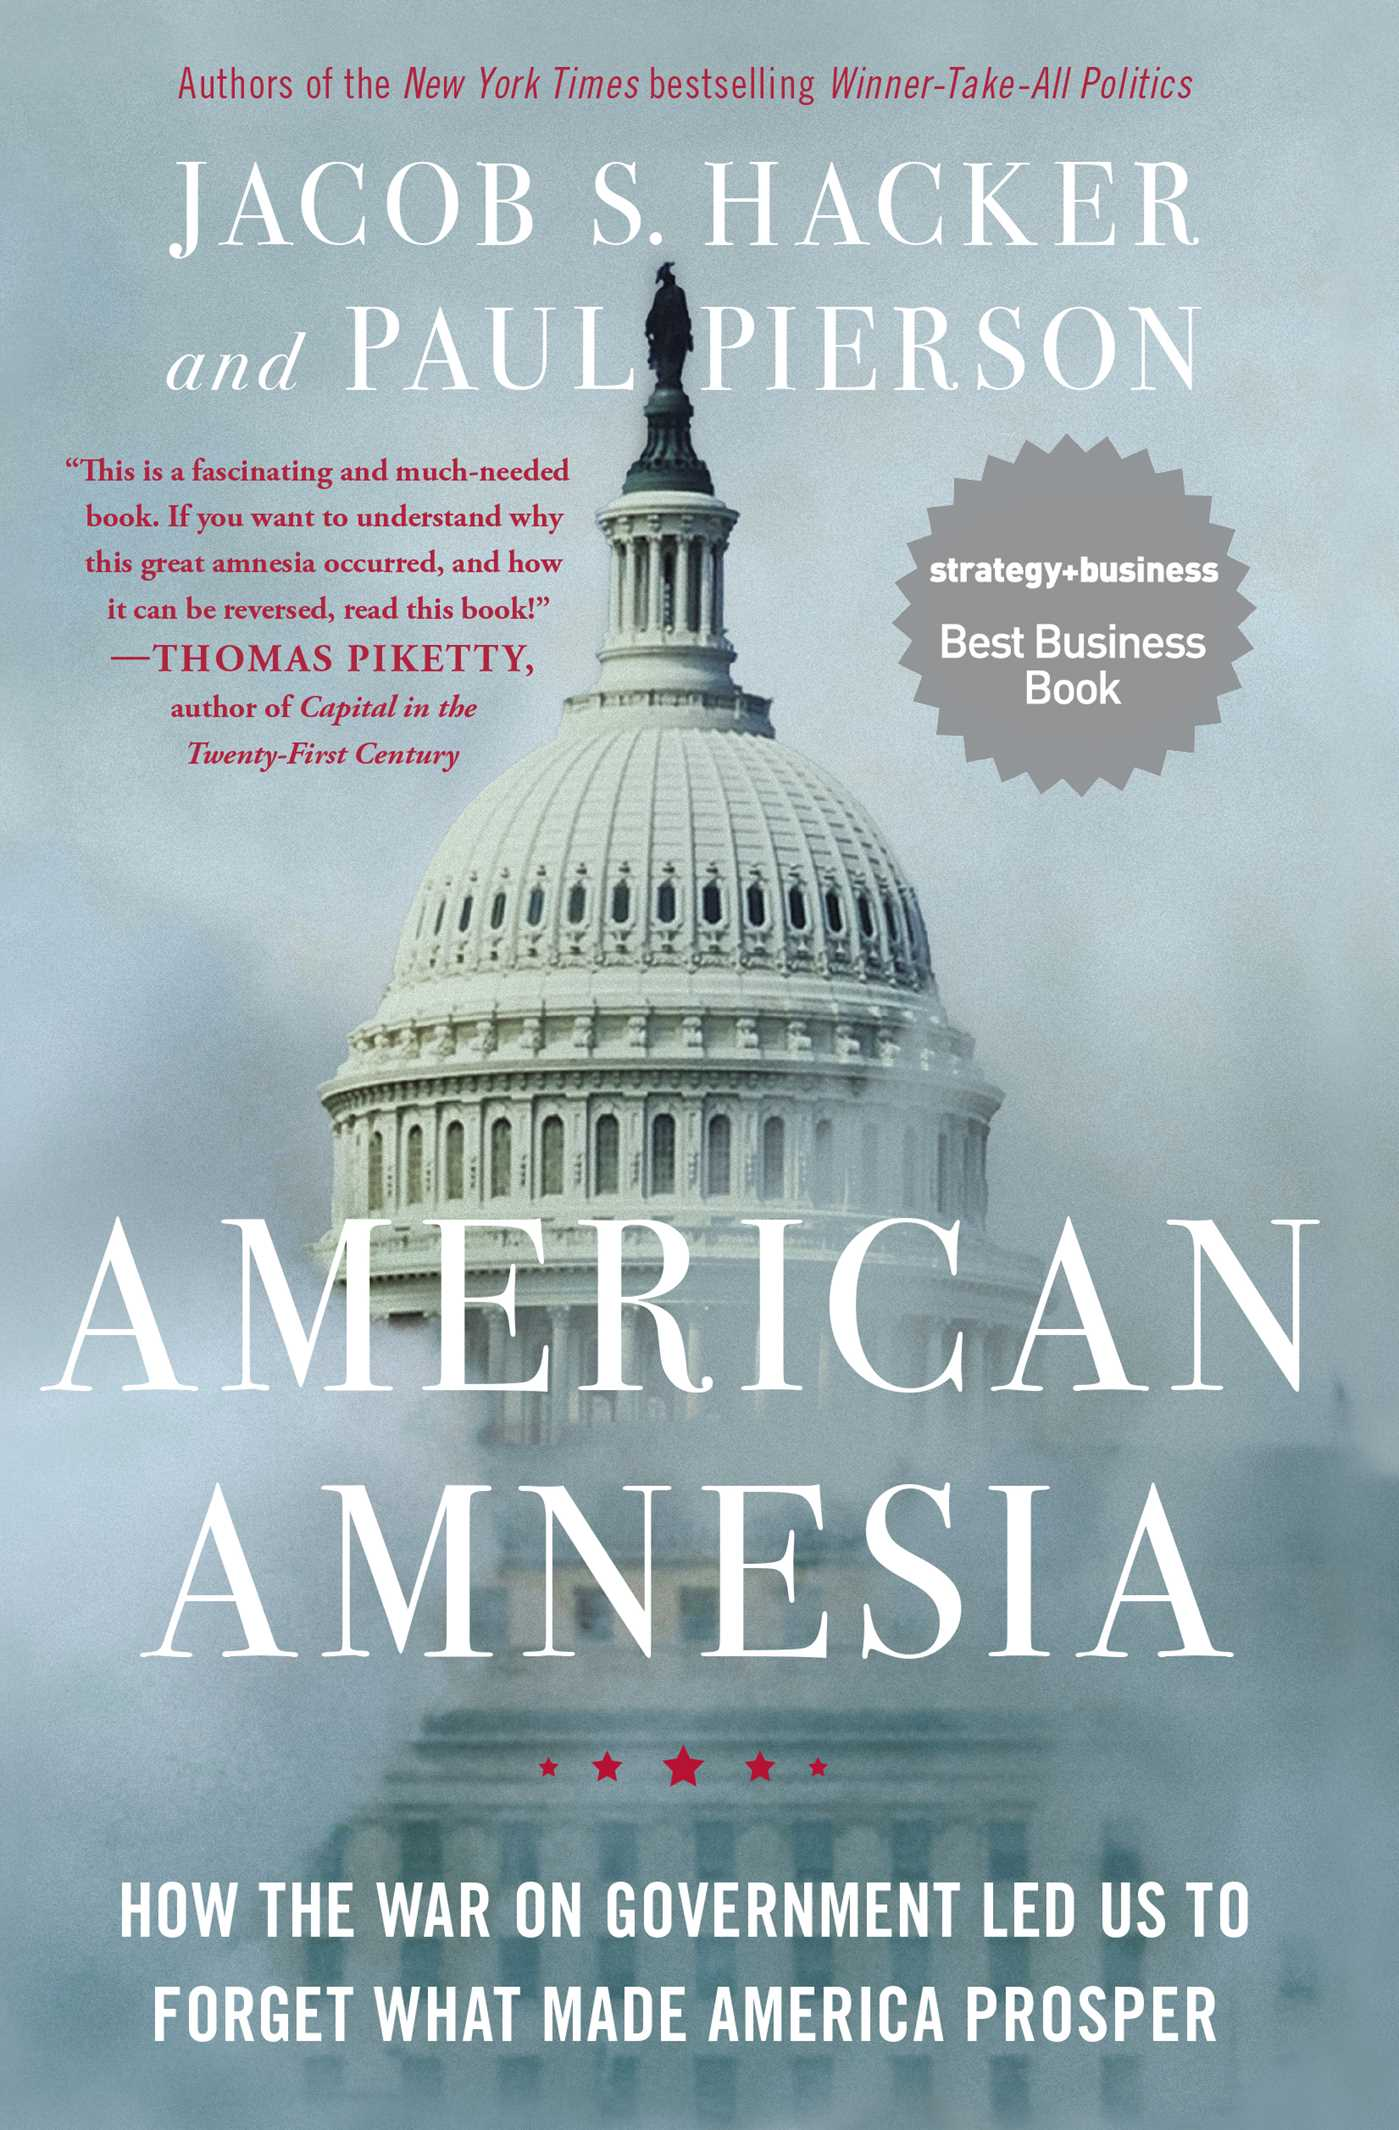 American Amnesia How the War on Government Led Us to Forget What Made America Prosper